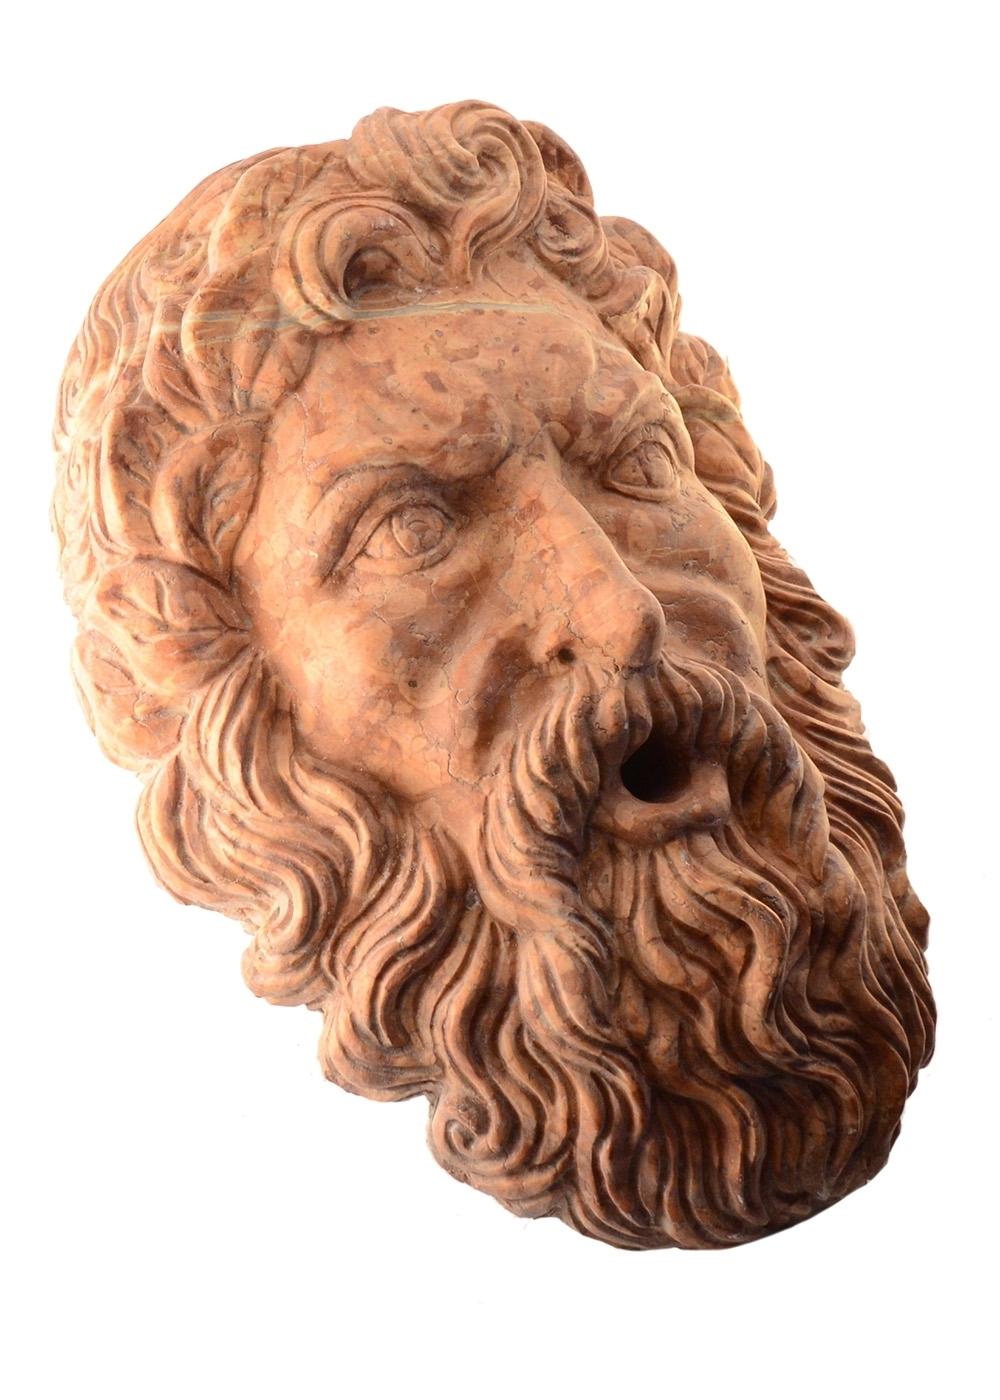 Buy Grotesque Mask Wall Bearded Man Marble 17457734 | Italy2Us.com